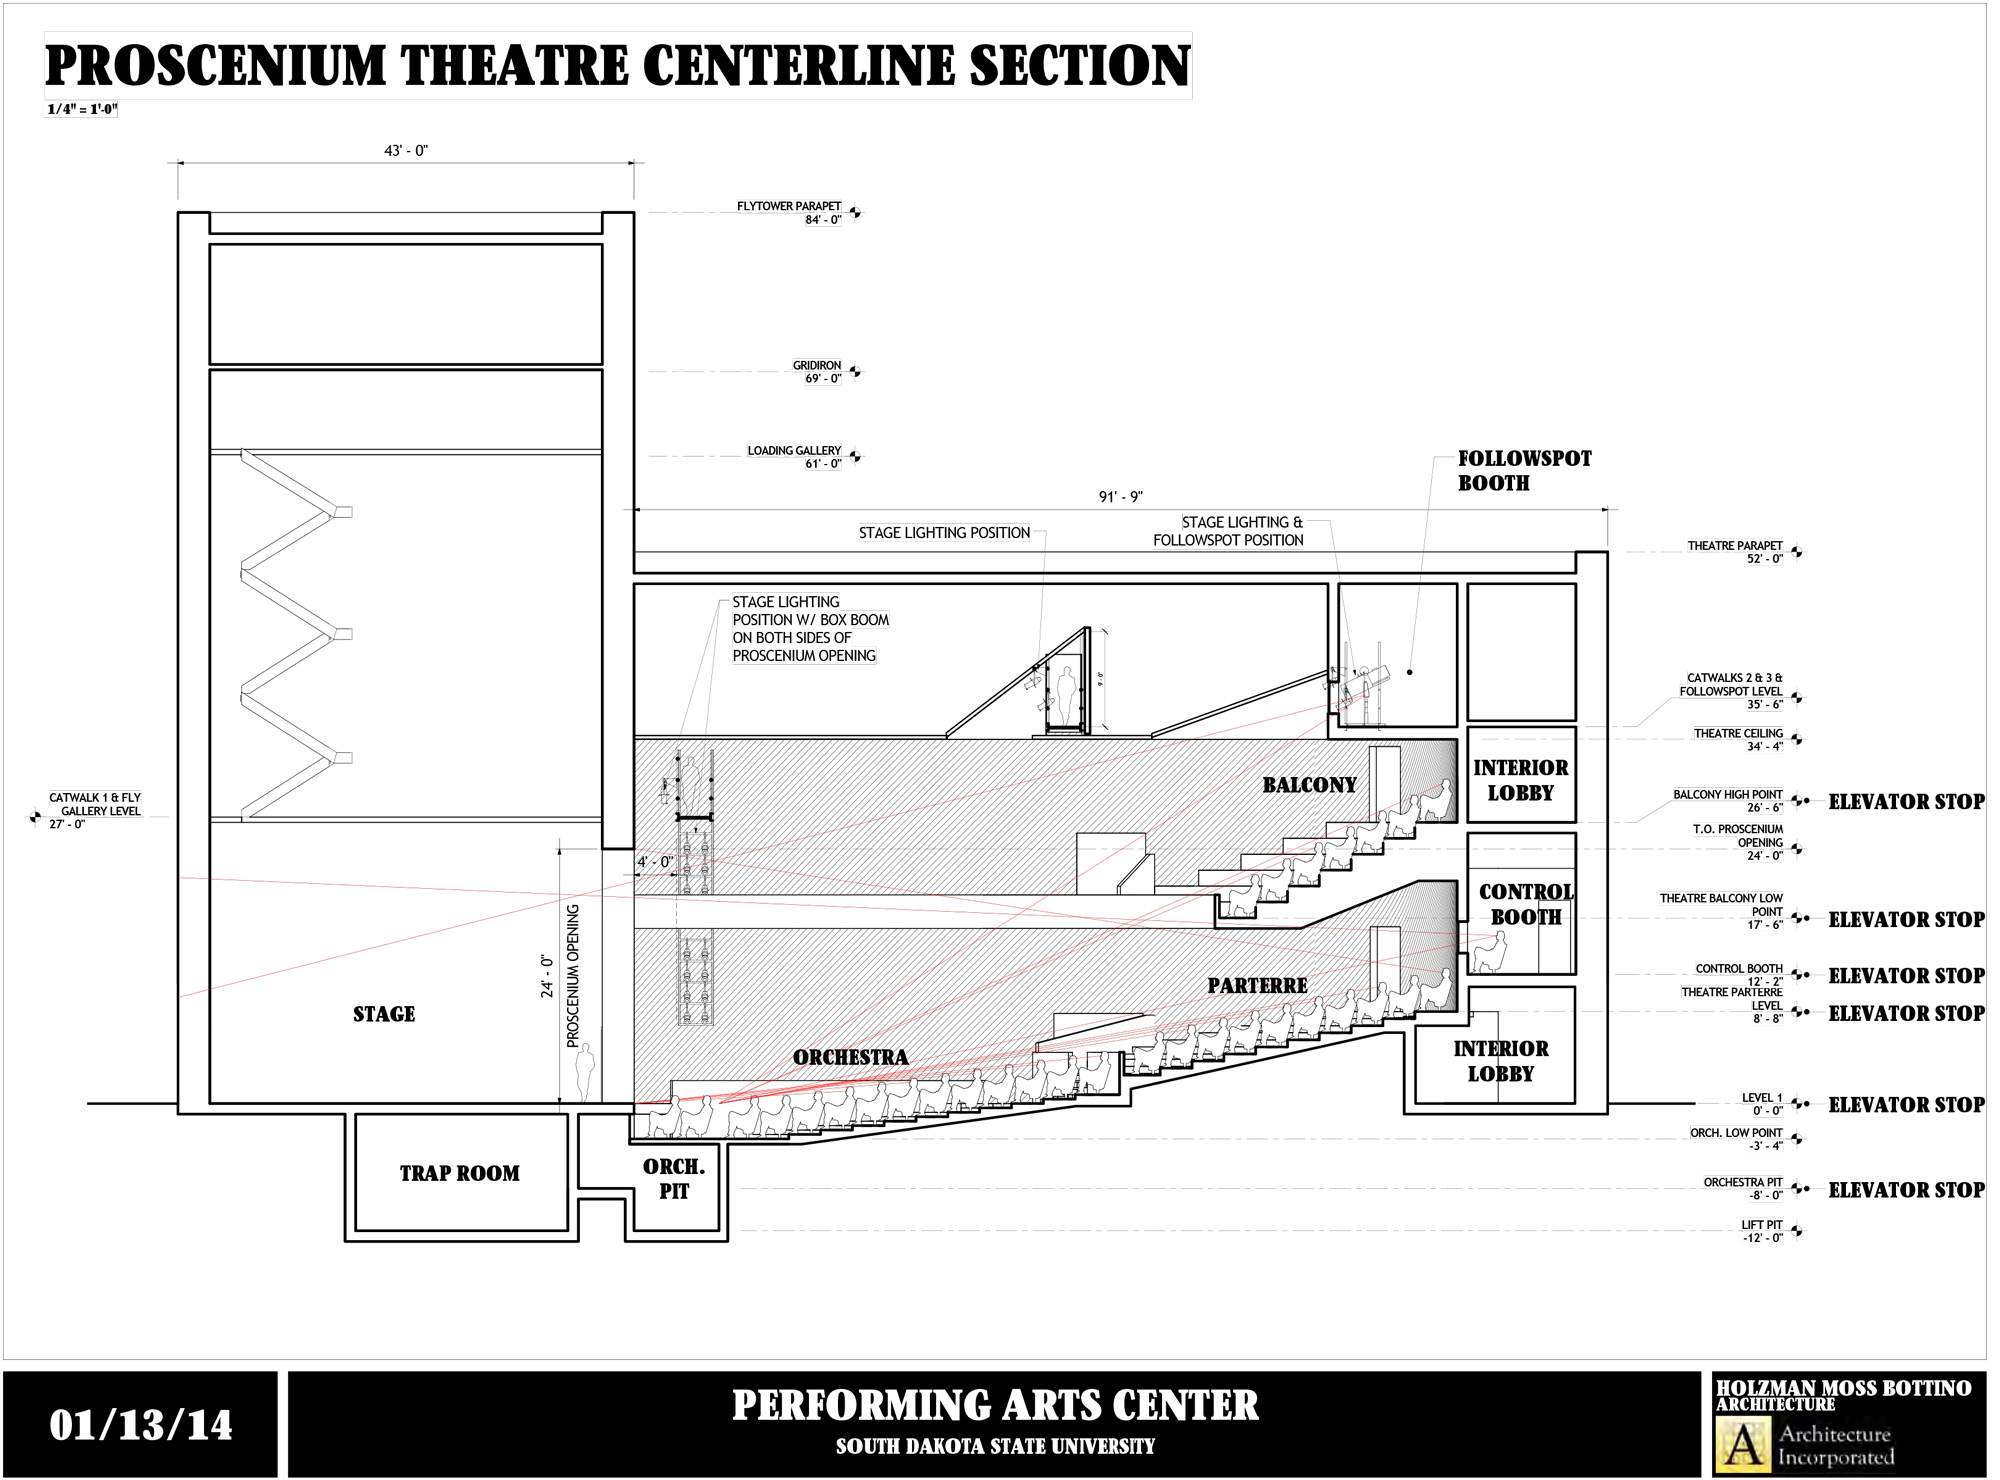 stage directions diagram for all parts mast on sailboat proscenium pictures to pin pinterest